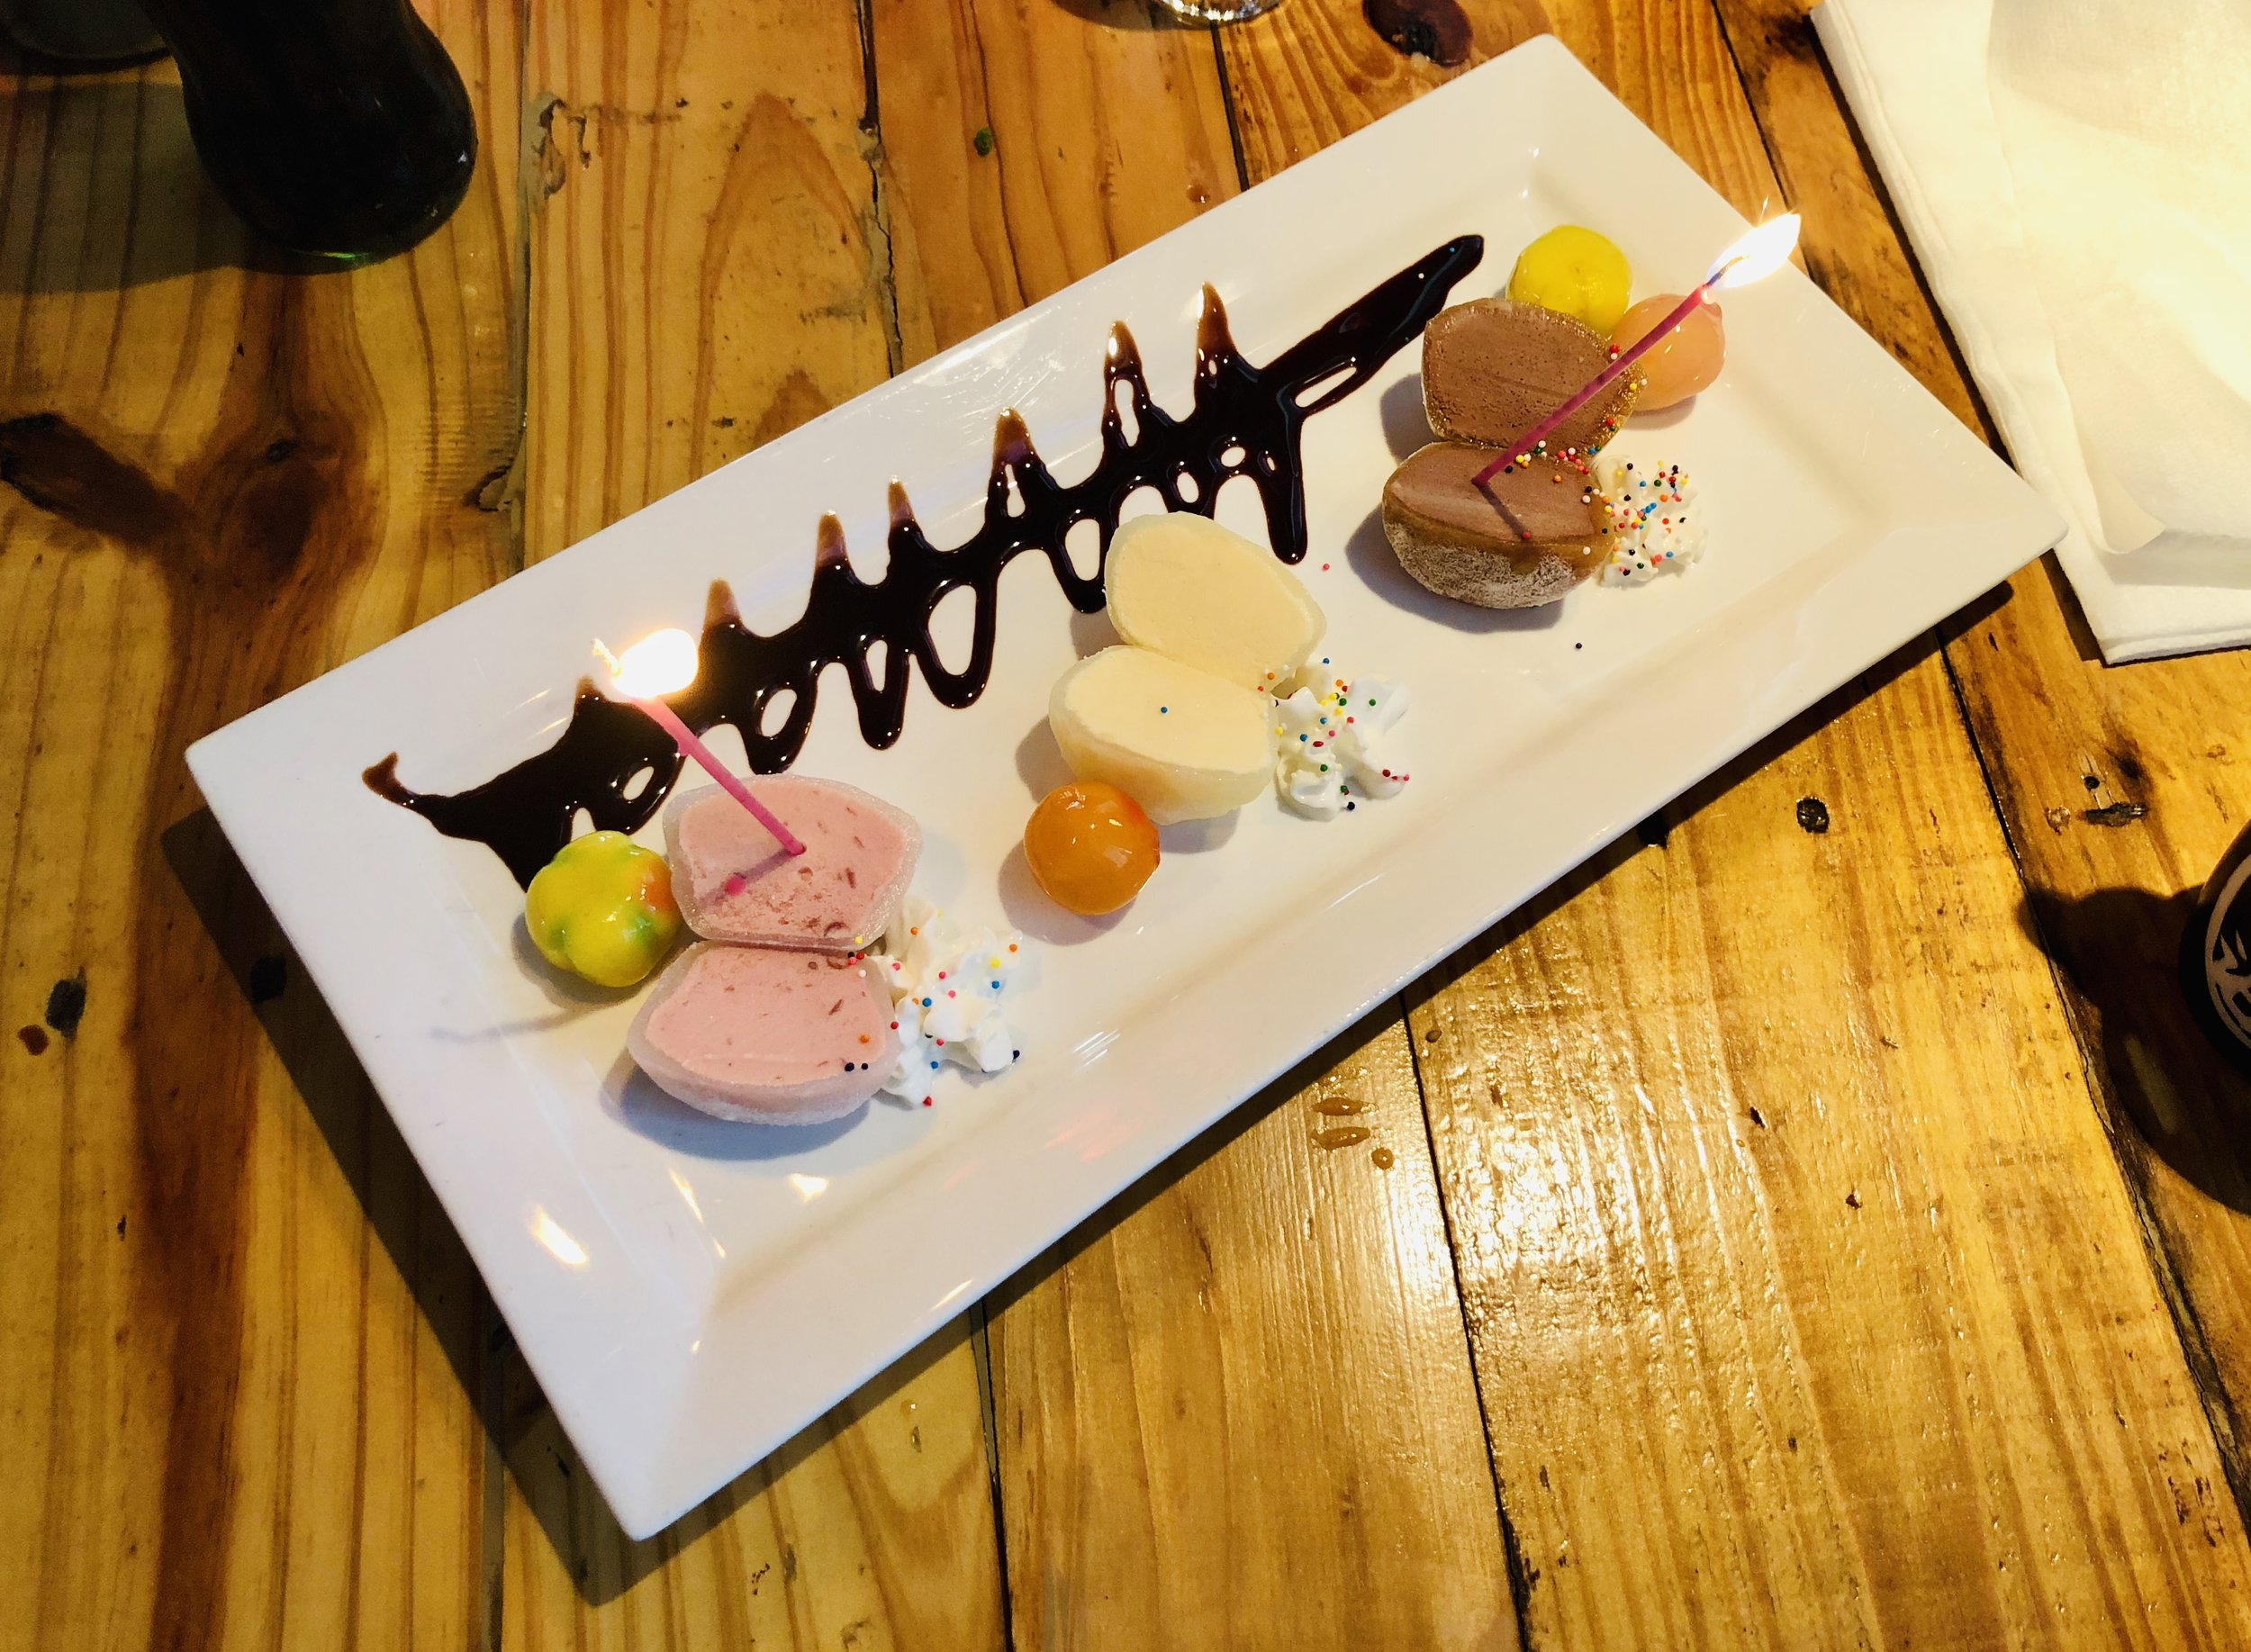 Mochi ice cream is pretty amazing and a must have when we have Japanese food.